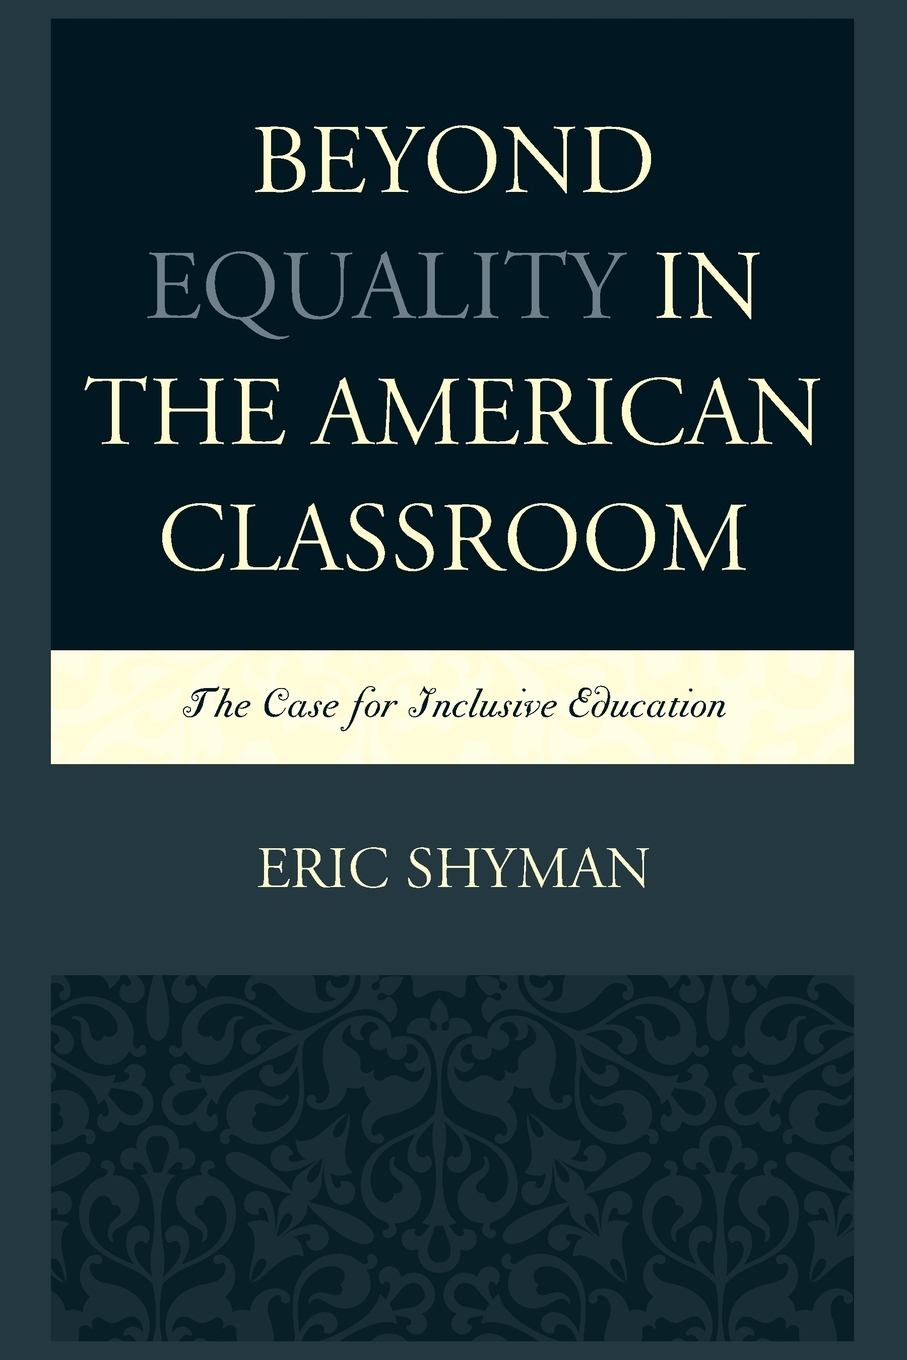 Beyond equality in the American classroom : the case for inclusive education / Eric Shyman